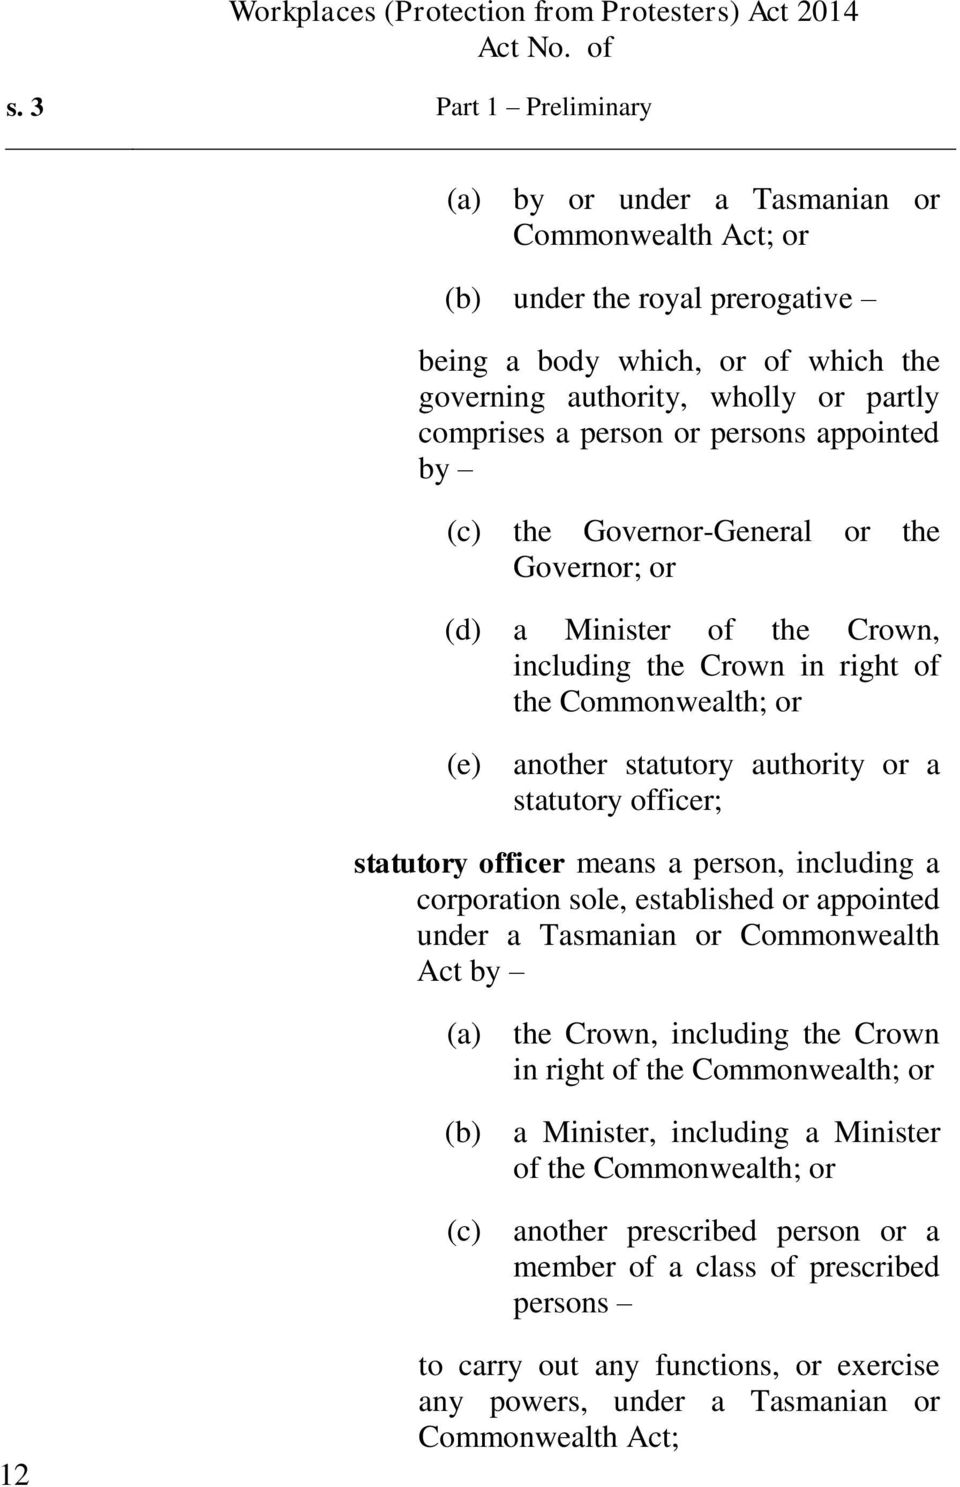 officer; statutory officer means a person, including a corporation sole, established or appointed under a Tasmanian or Commonwealth Act by (c) the Crown, including the Crown in right of the